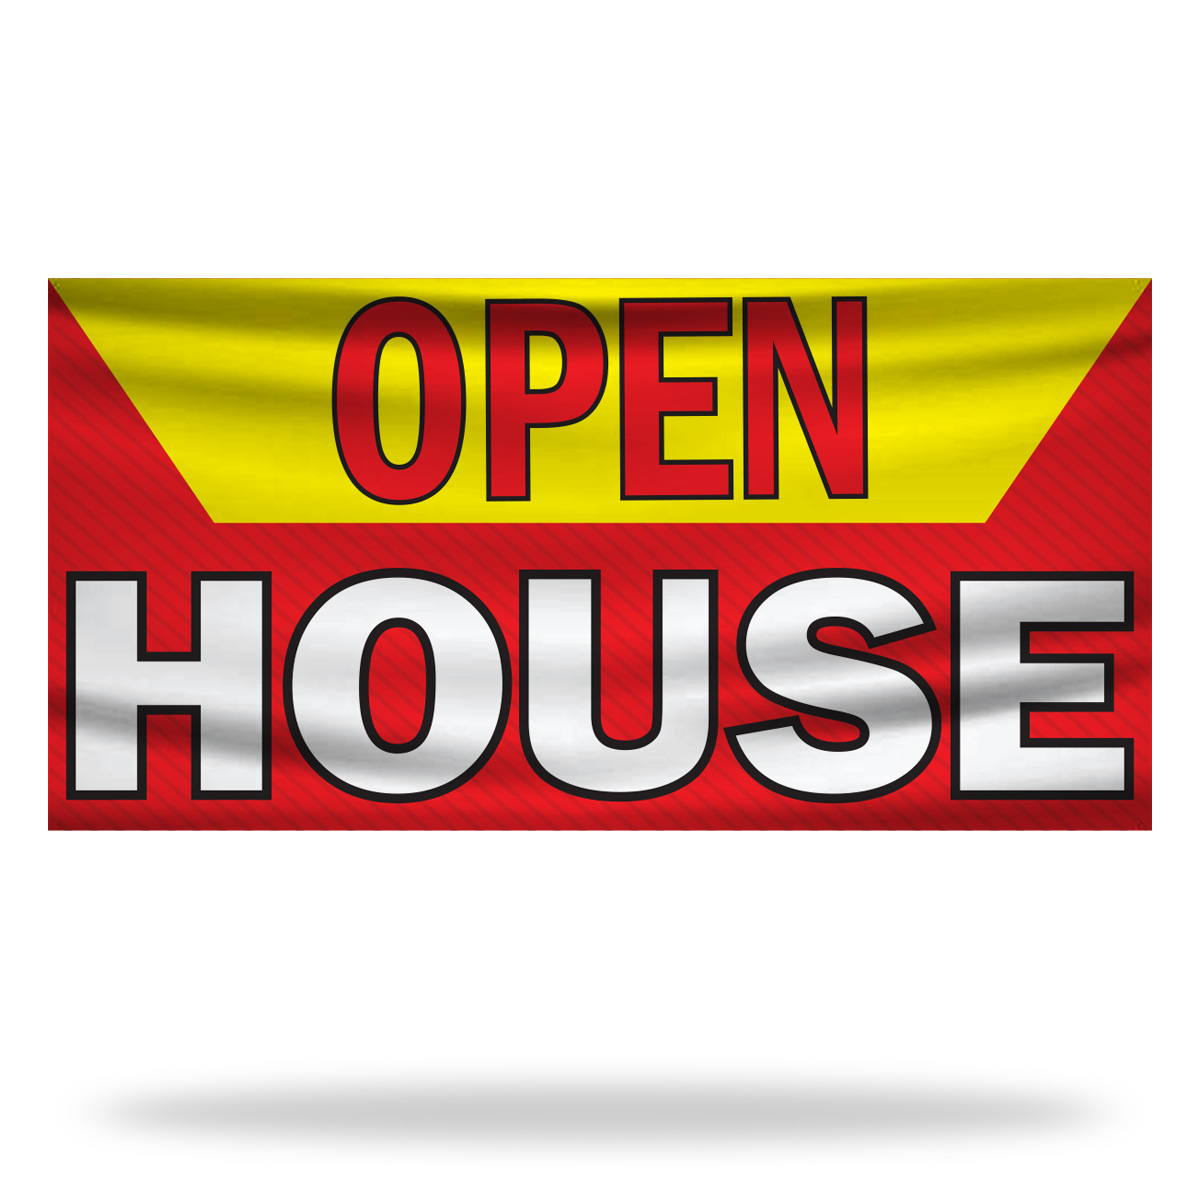 Open House Flags & Banners Design 05